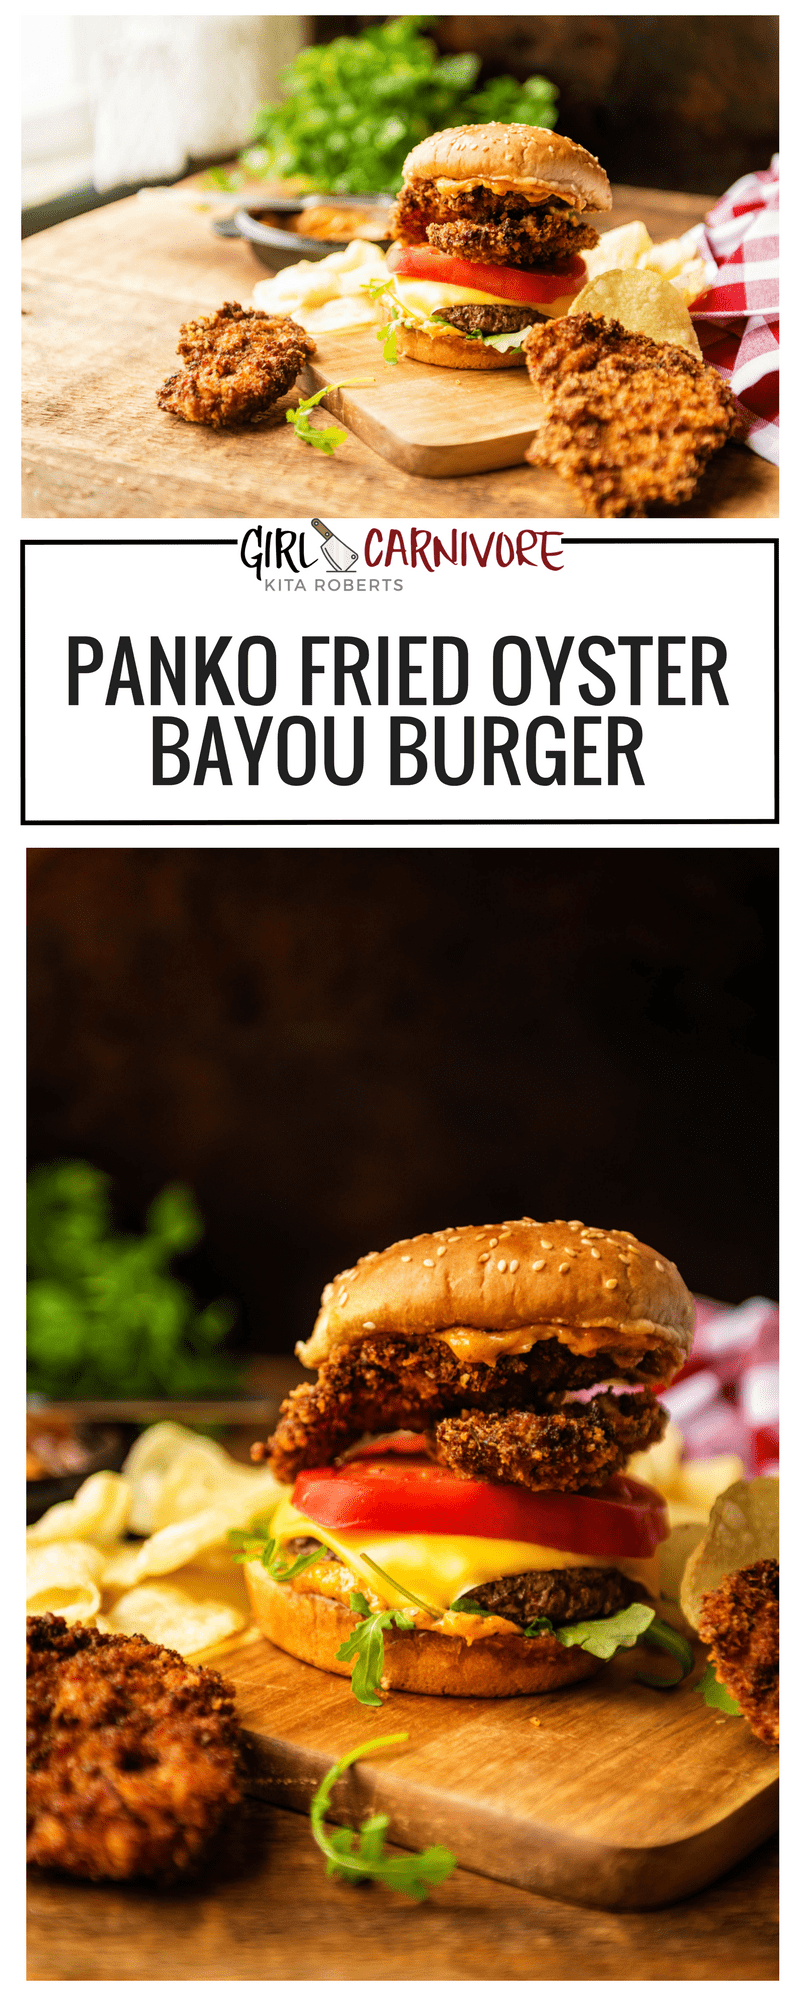 Girl Carnivore Fried Oyster Bayou Burger Recipe